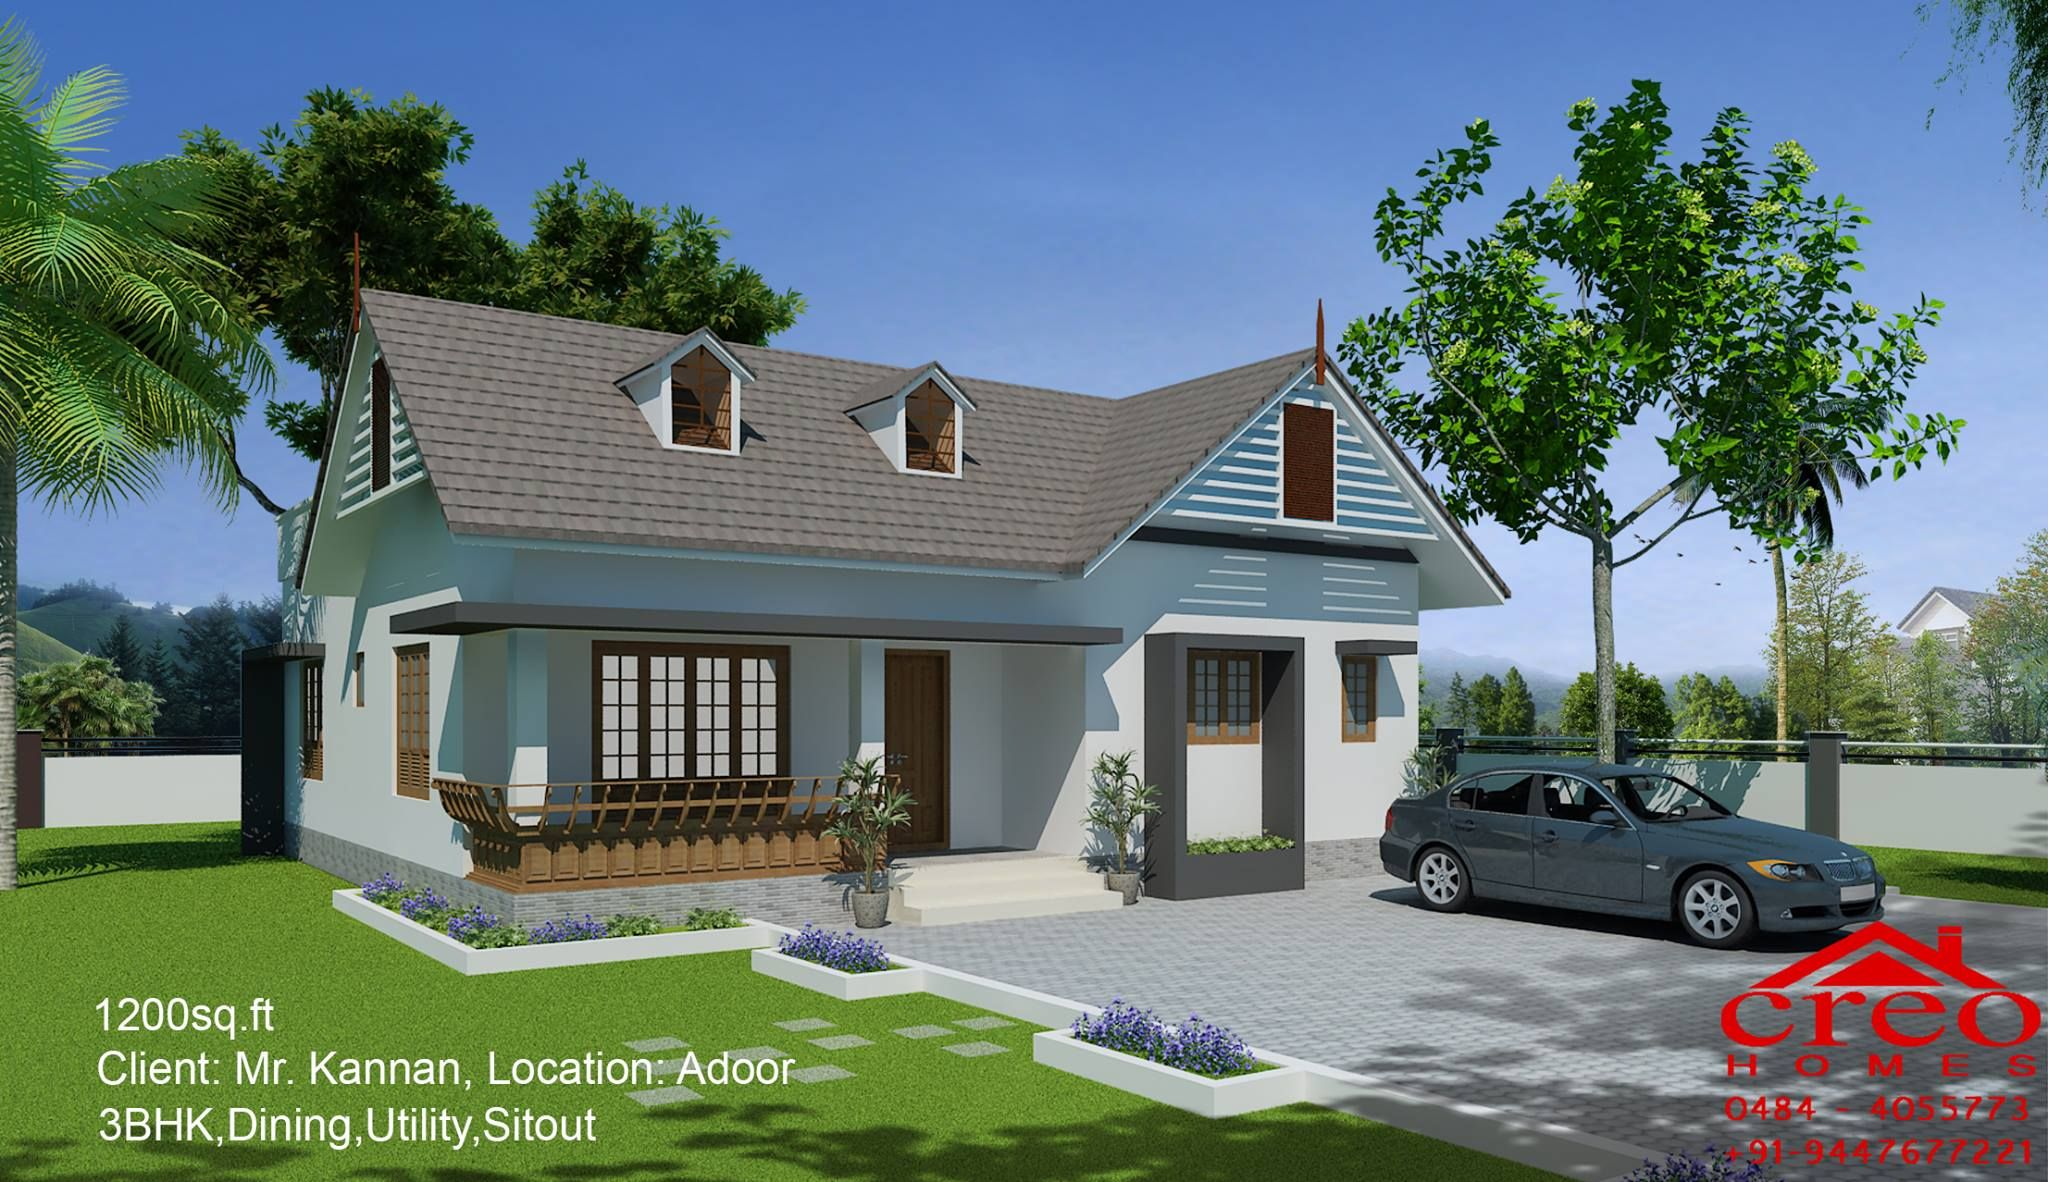 house design in kerala below 15 lakhs